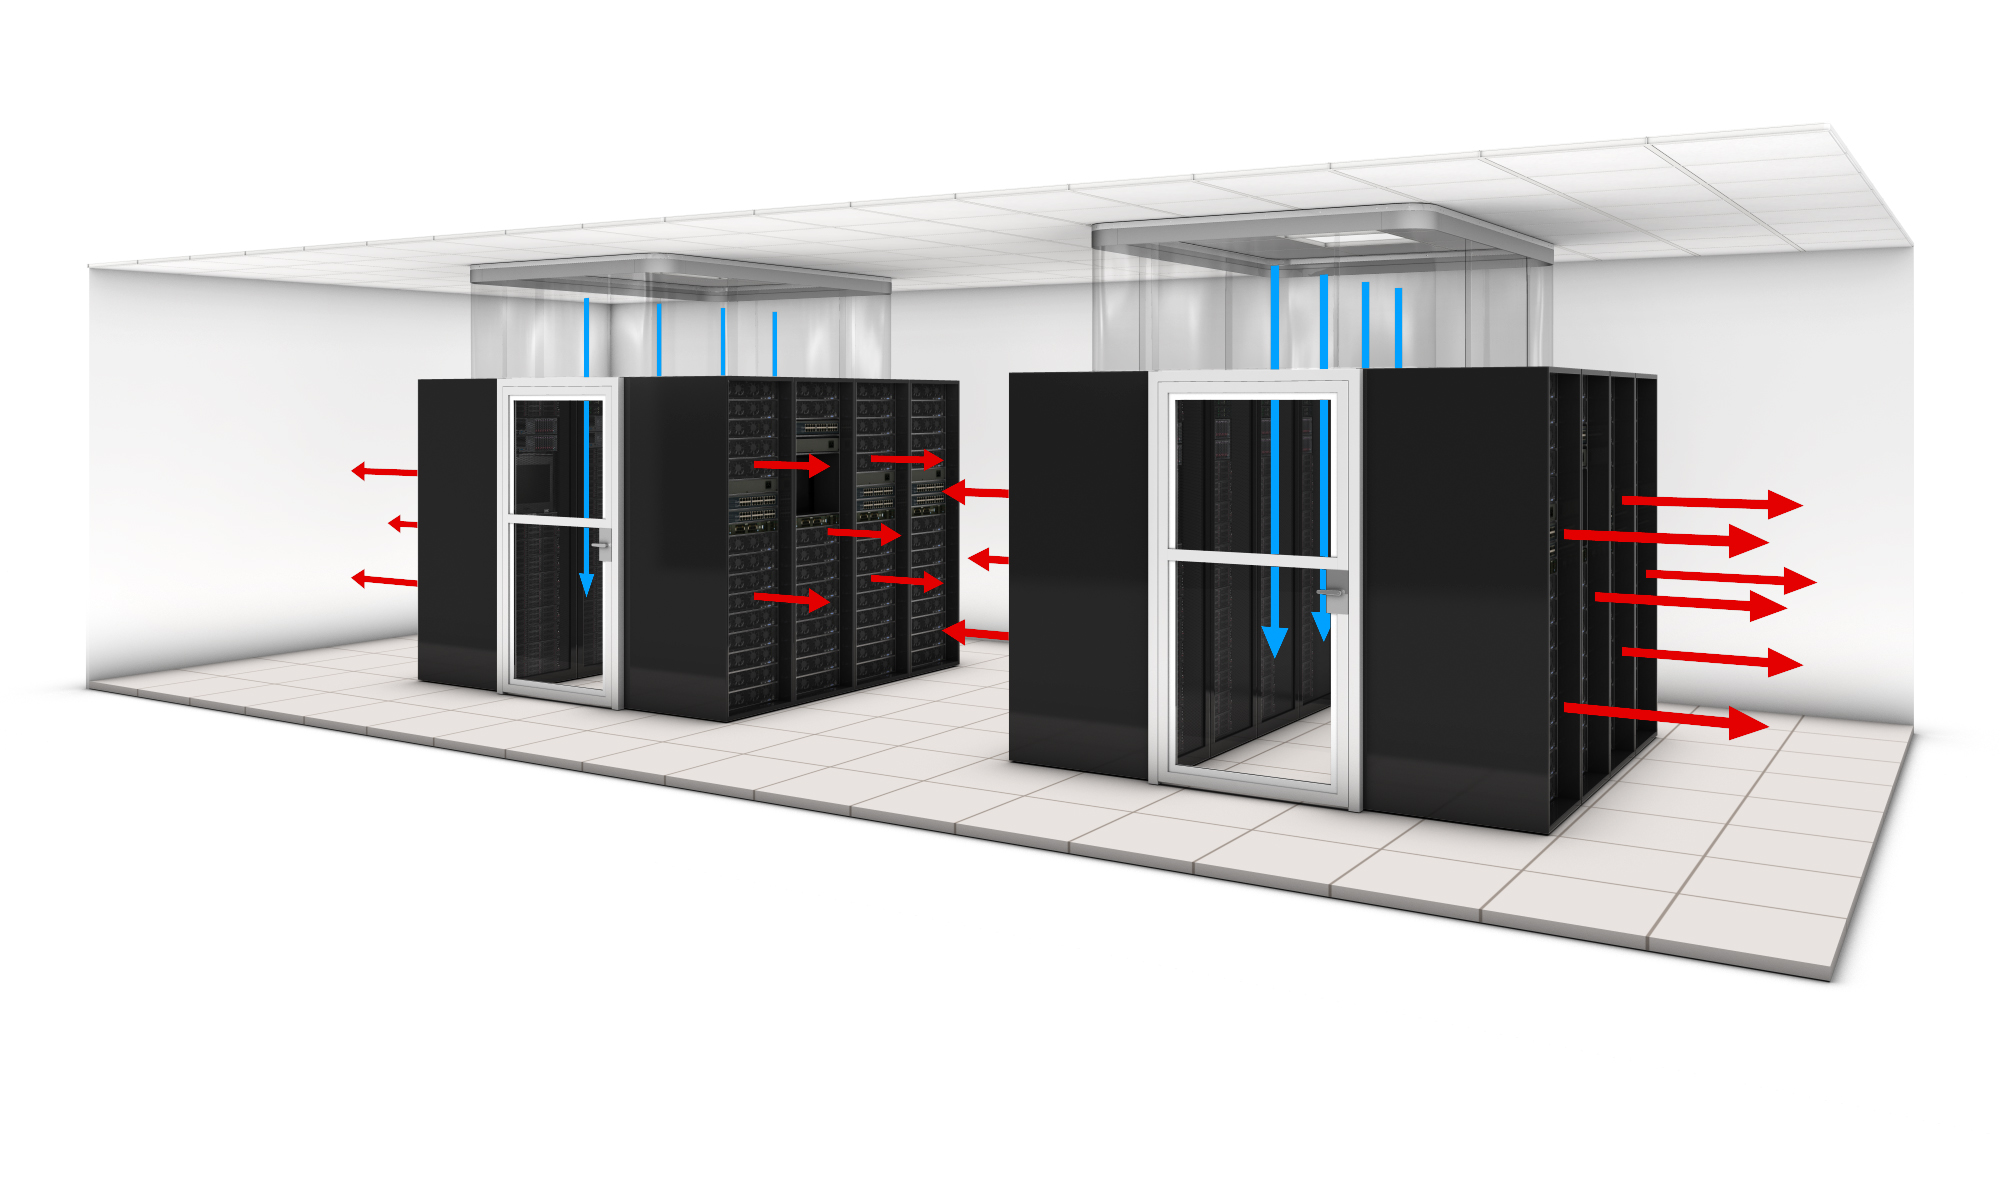 air flow assessement in data centers